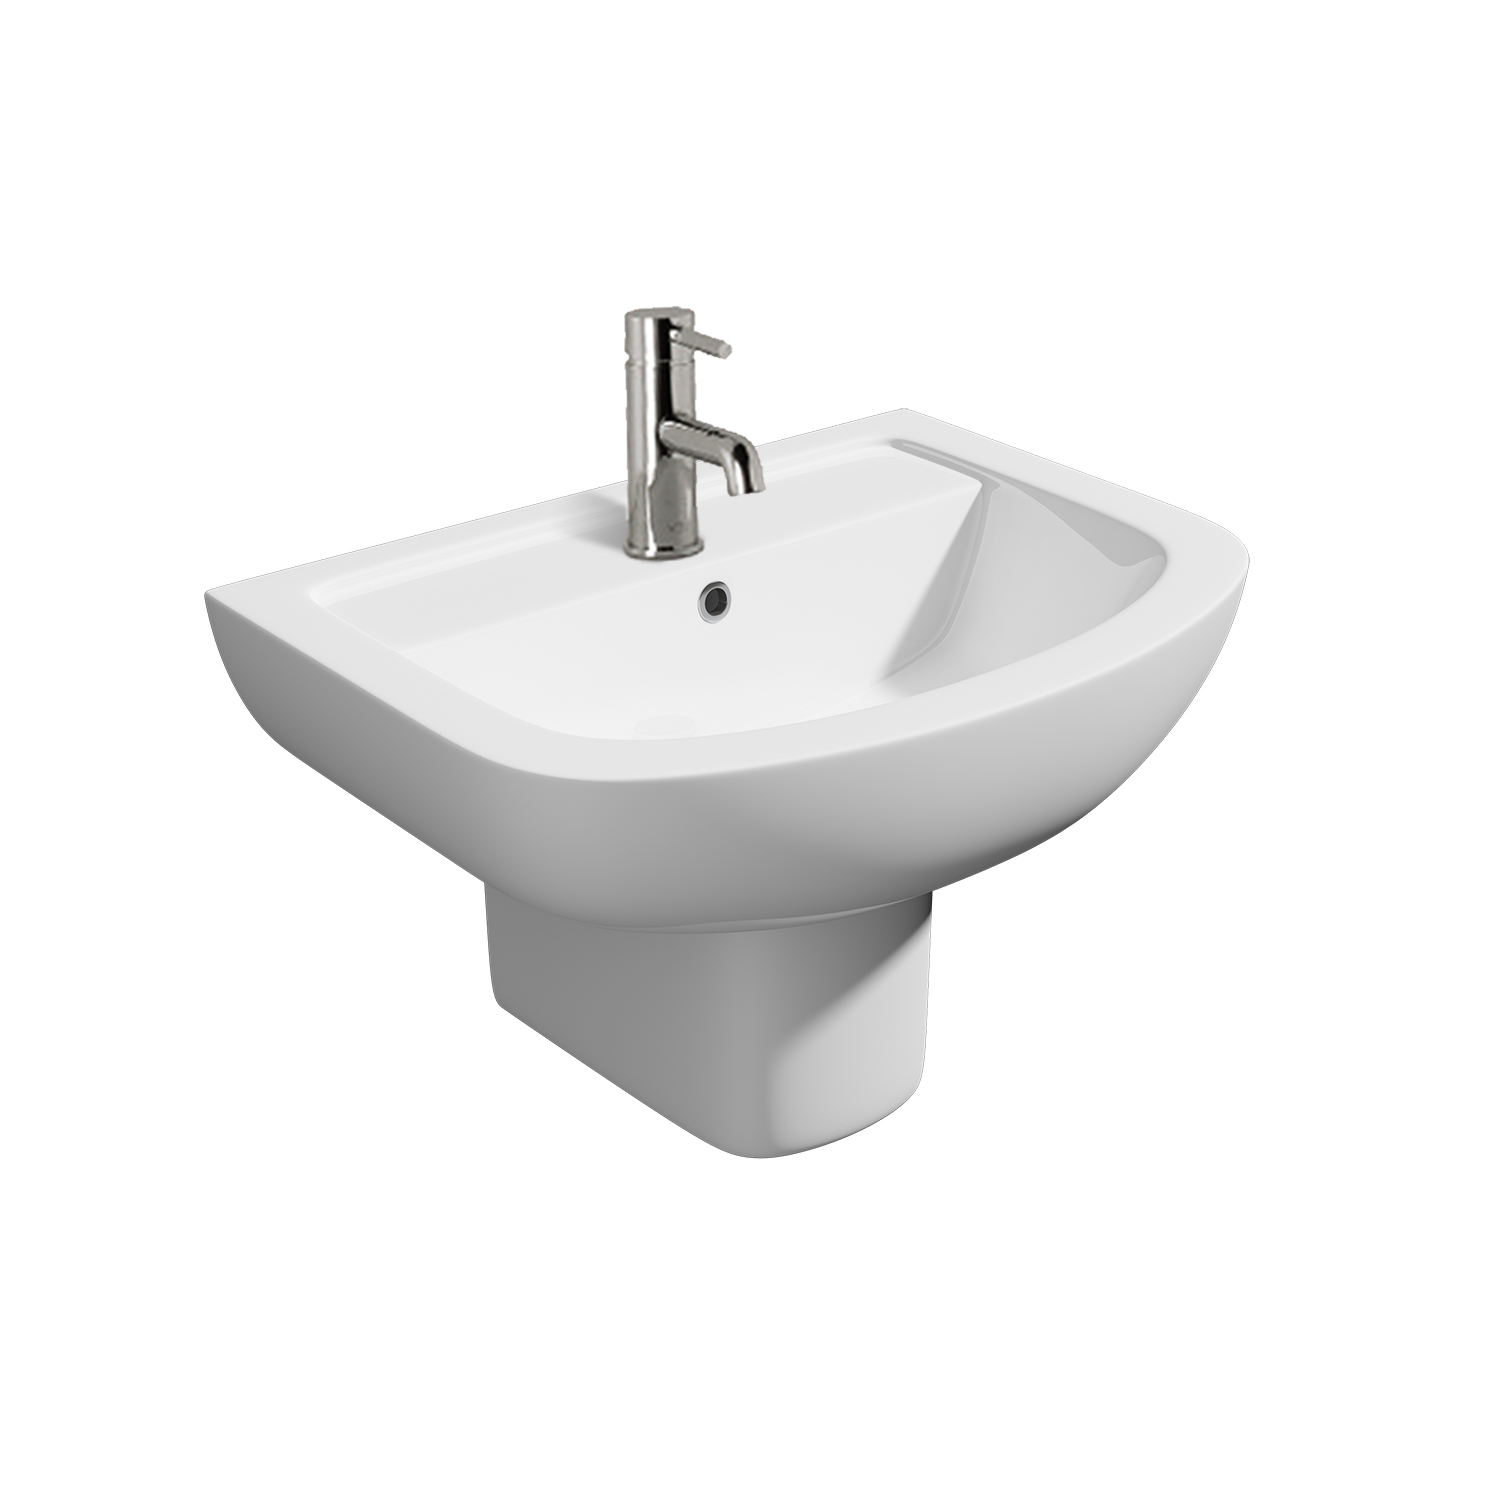 K-Vit Studio 550mm 1TH Basin & Semi-Pedestal